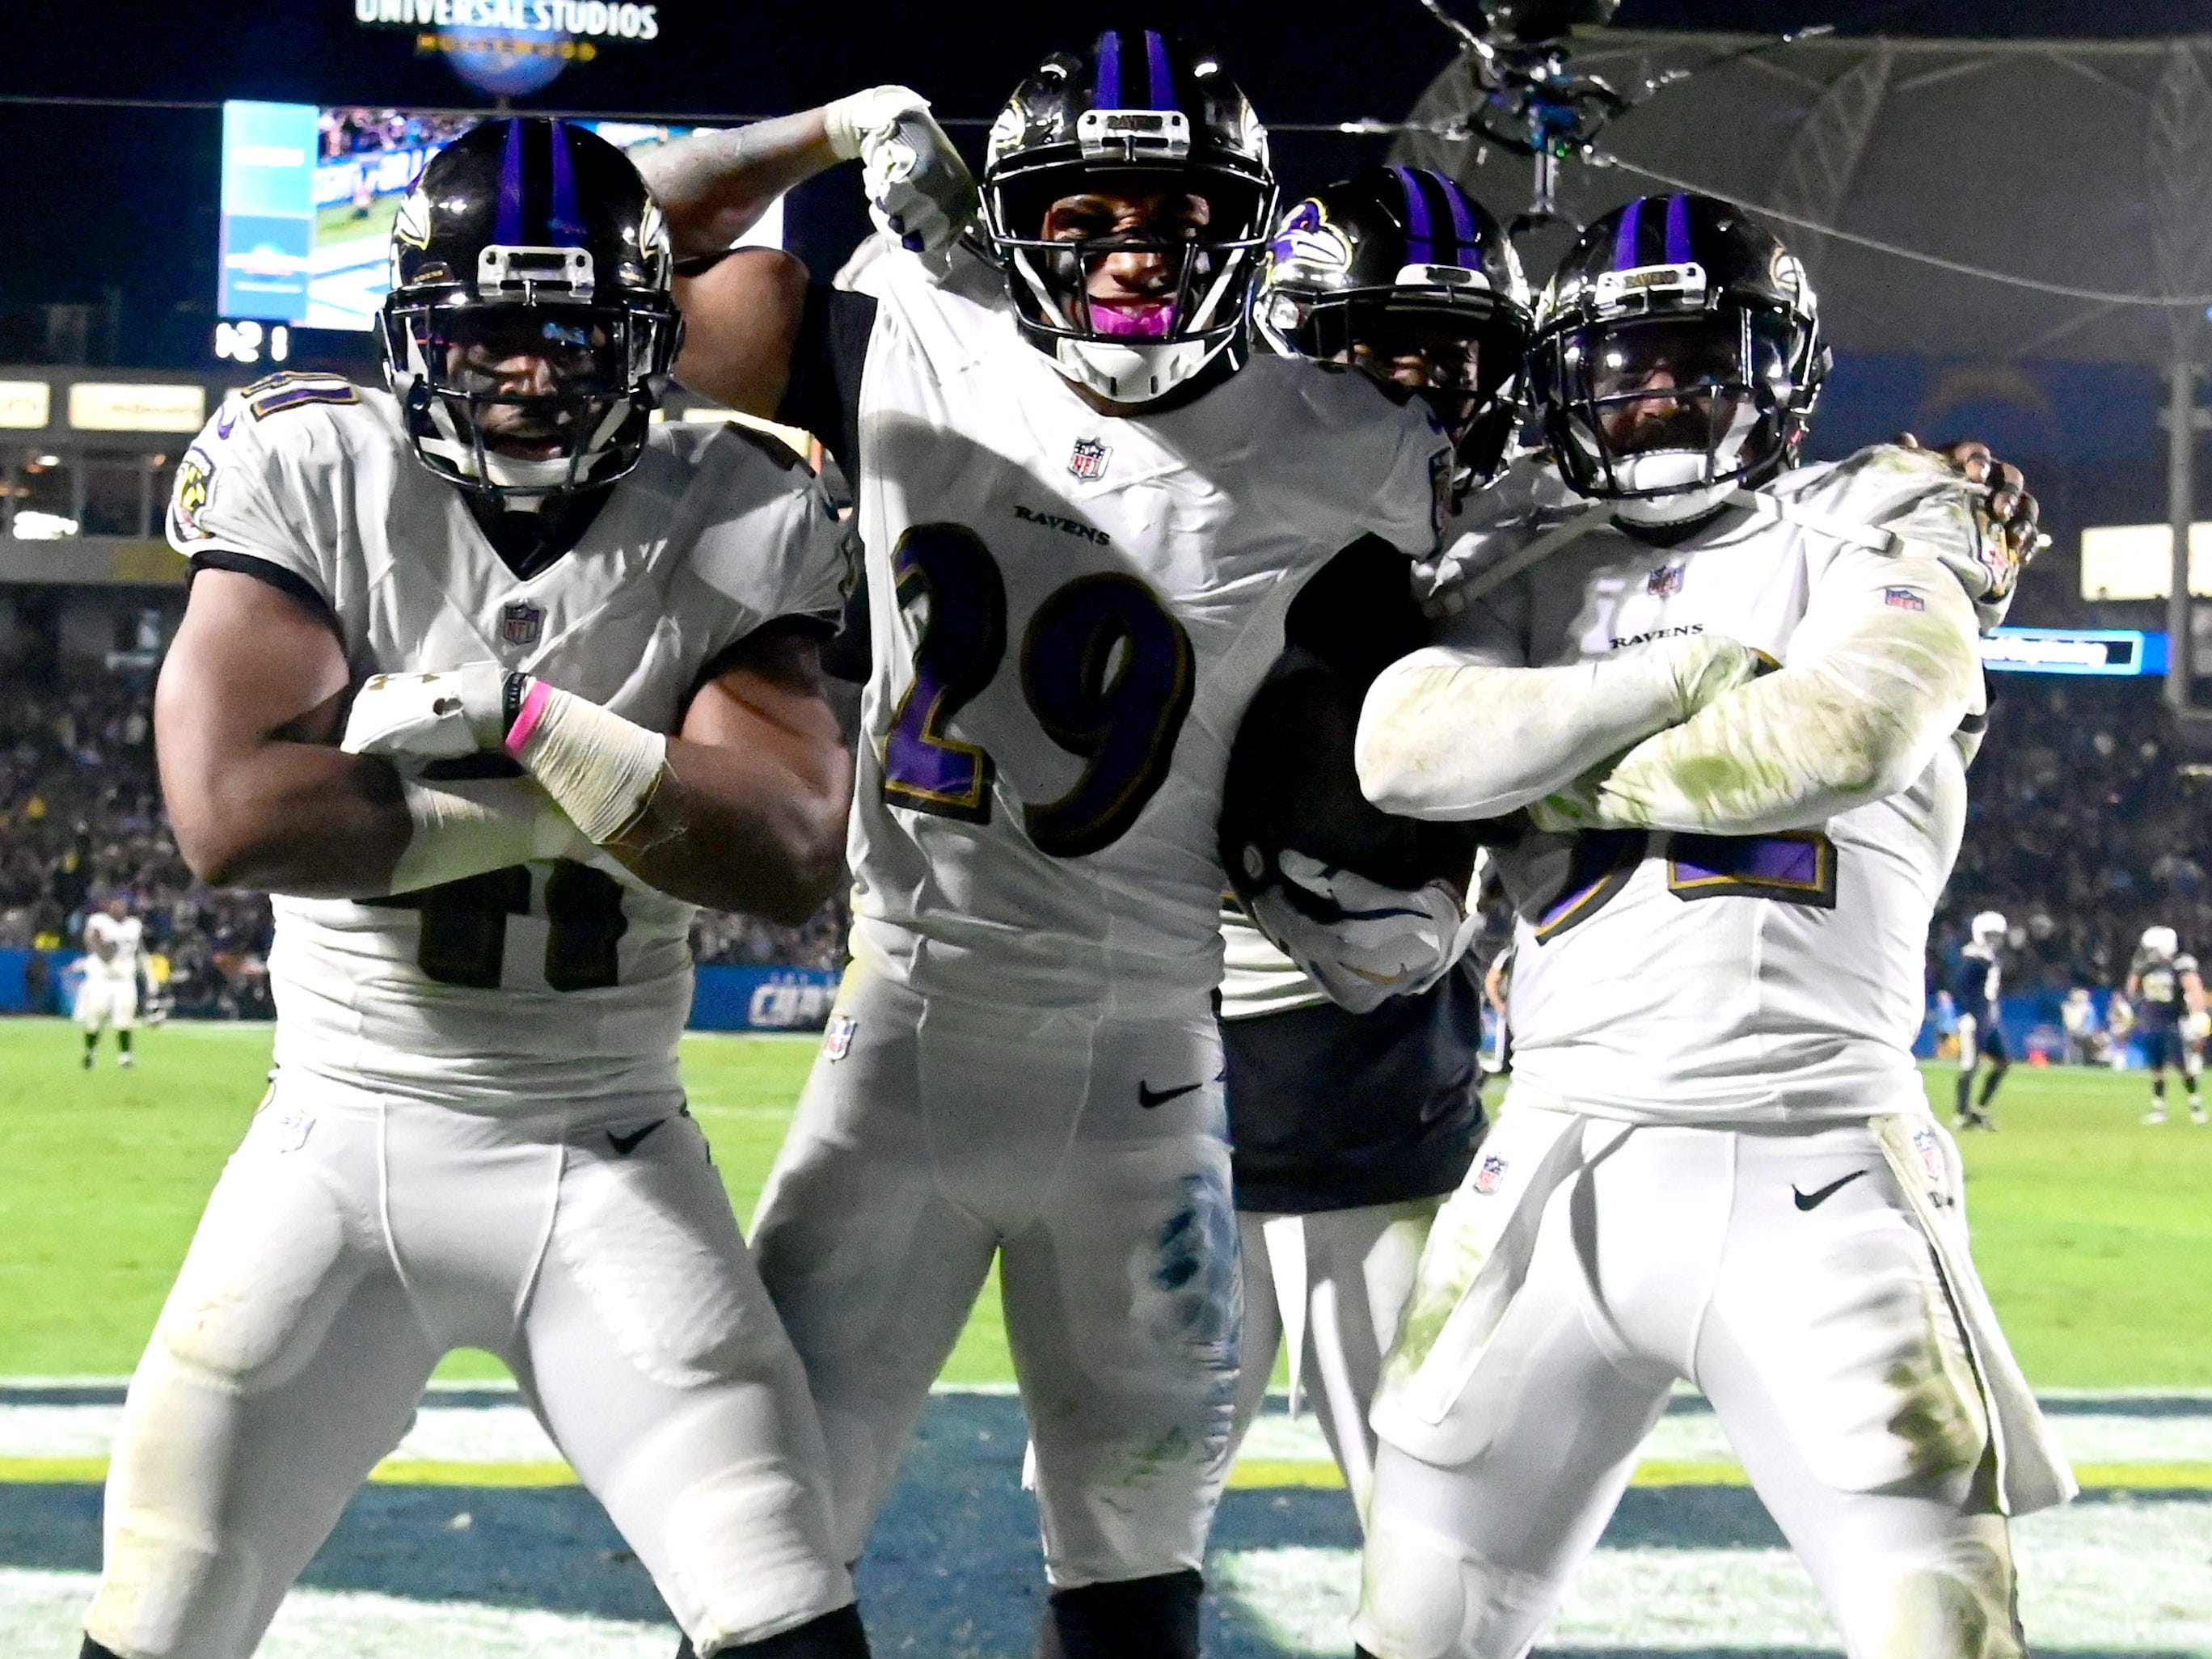 Baltimore Ravens cornerback Marlon Humphrey (29) celebrates with defensive back Anthony Levine (41), strong safety Tony Jefferson (23) and free safety Eric Weddle (32) after intercepting a pass in the fourth quarter against the Los Angeles Chargers  at StubHub Center.